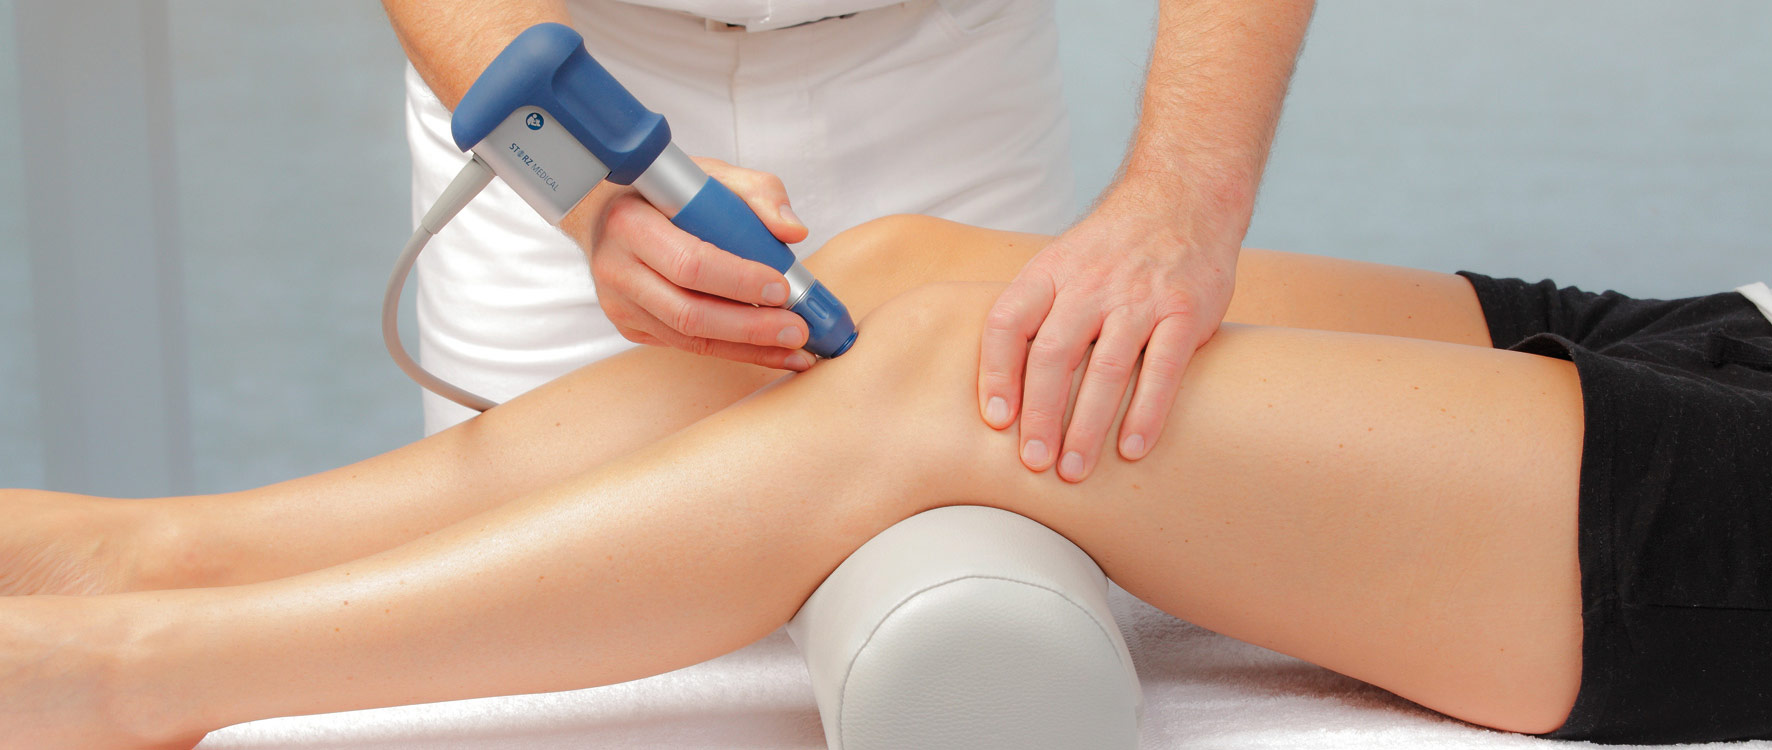 painrelief shockwave therapy.jpg